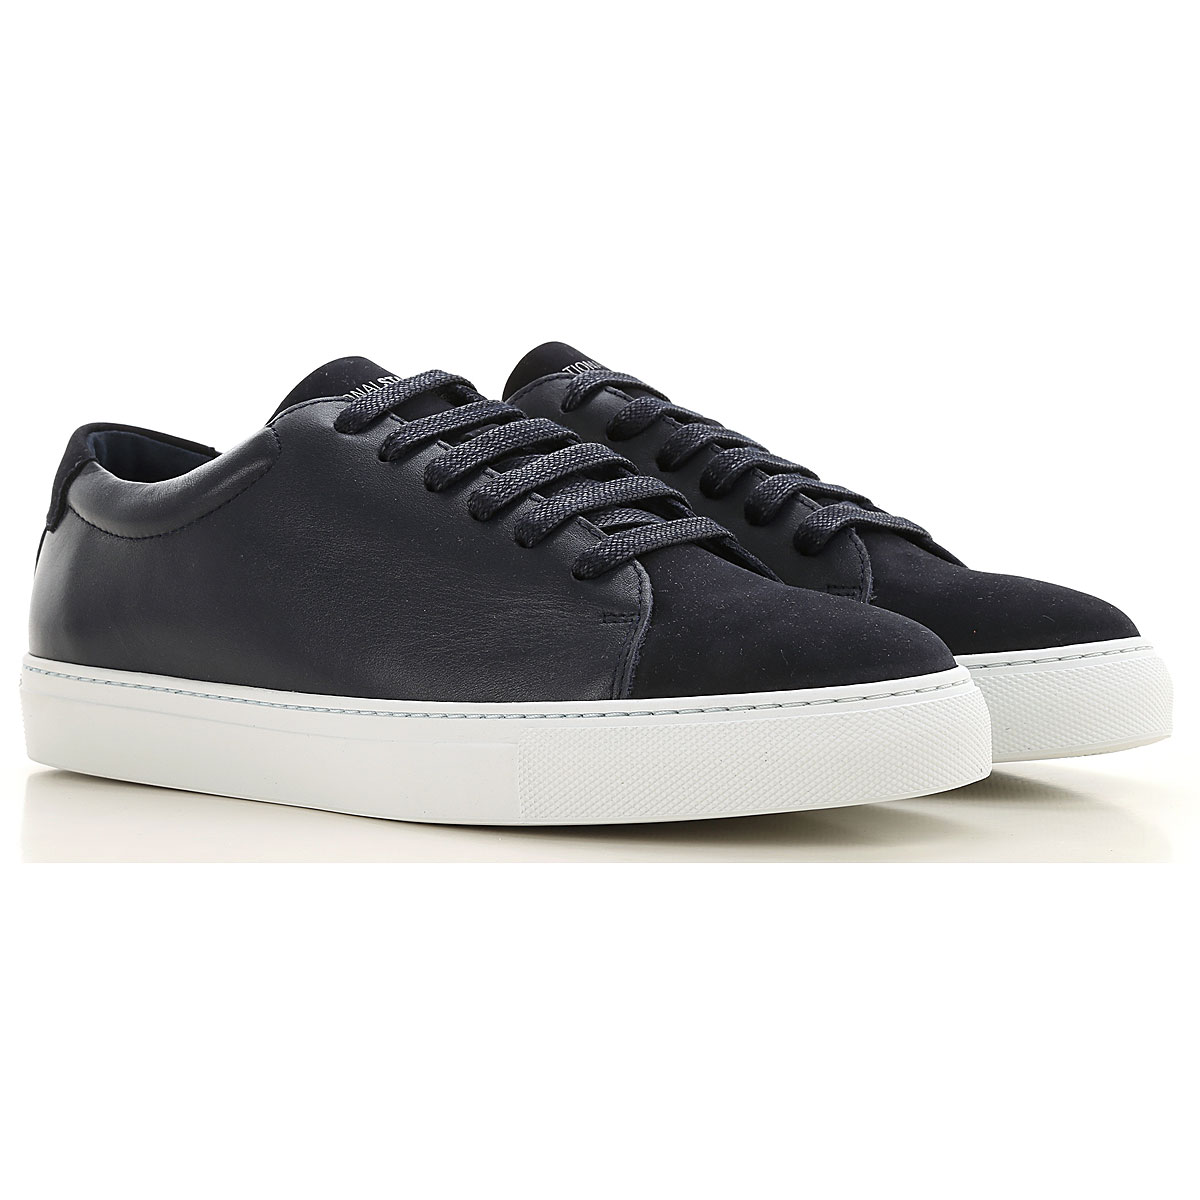 National Standard Sneakers for Men On Sale, Blu Navy, Leather, 2019, 7 8